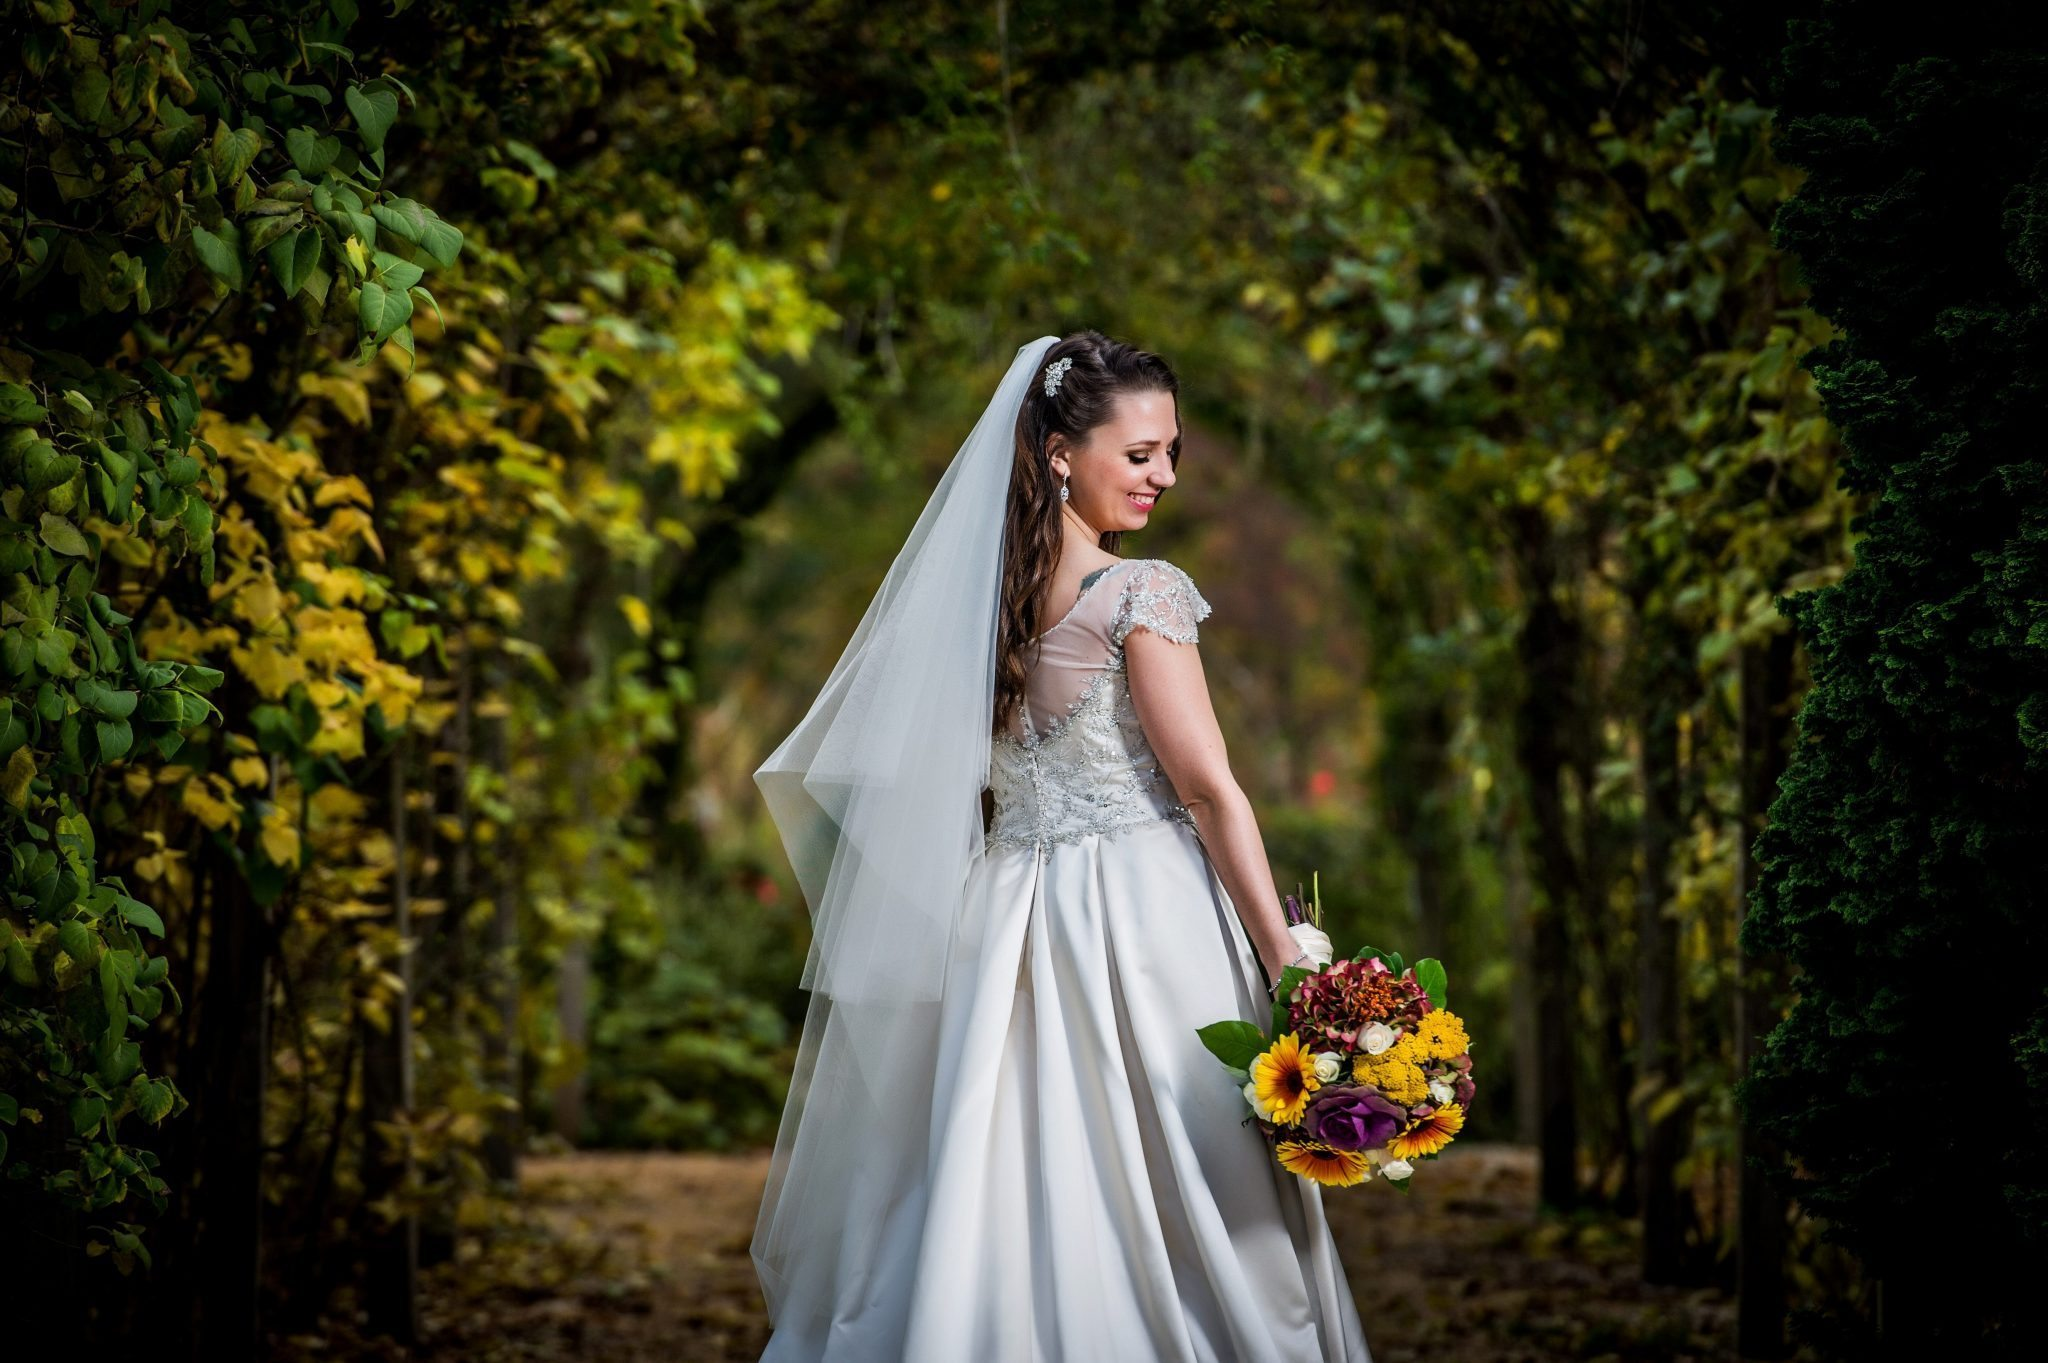 Wedding Dresses In Long Island New York - The Best Flowers Ideas